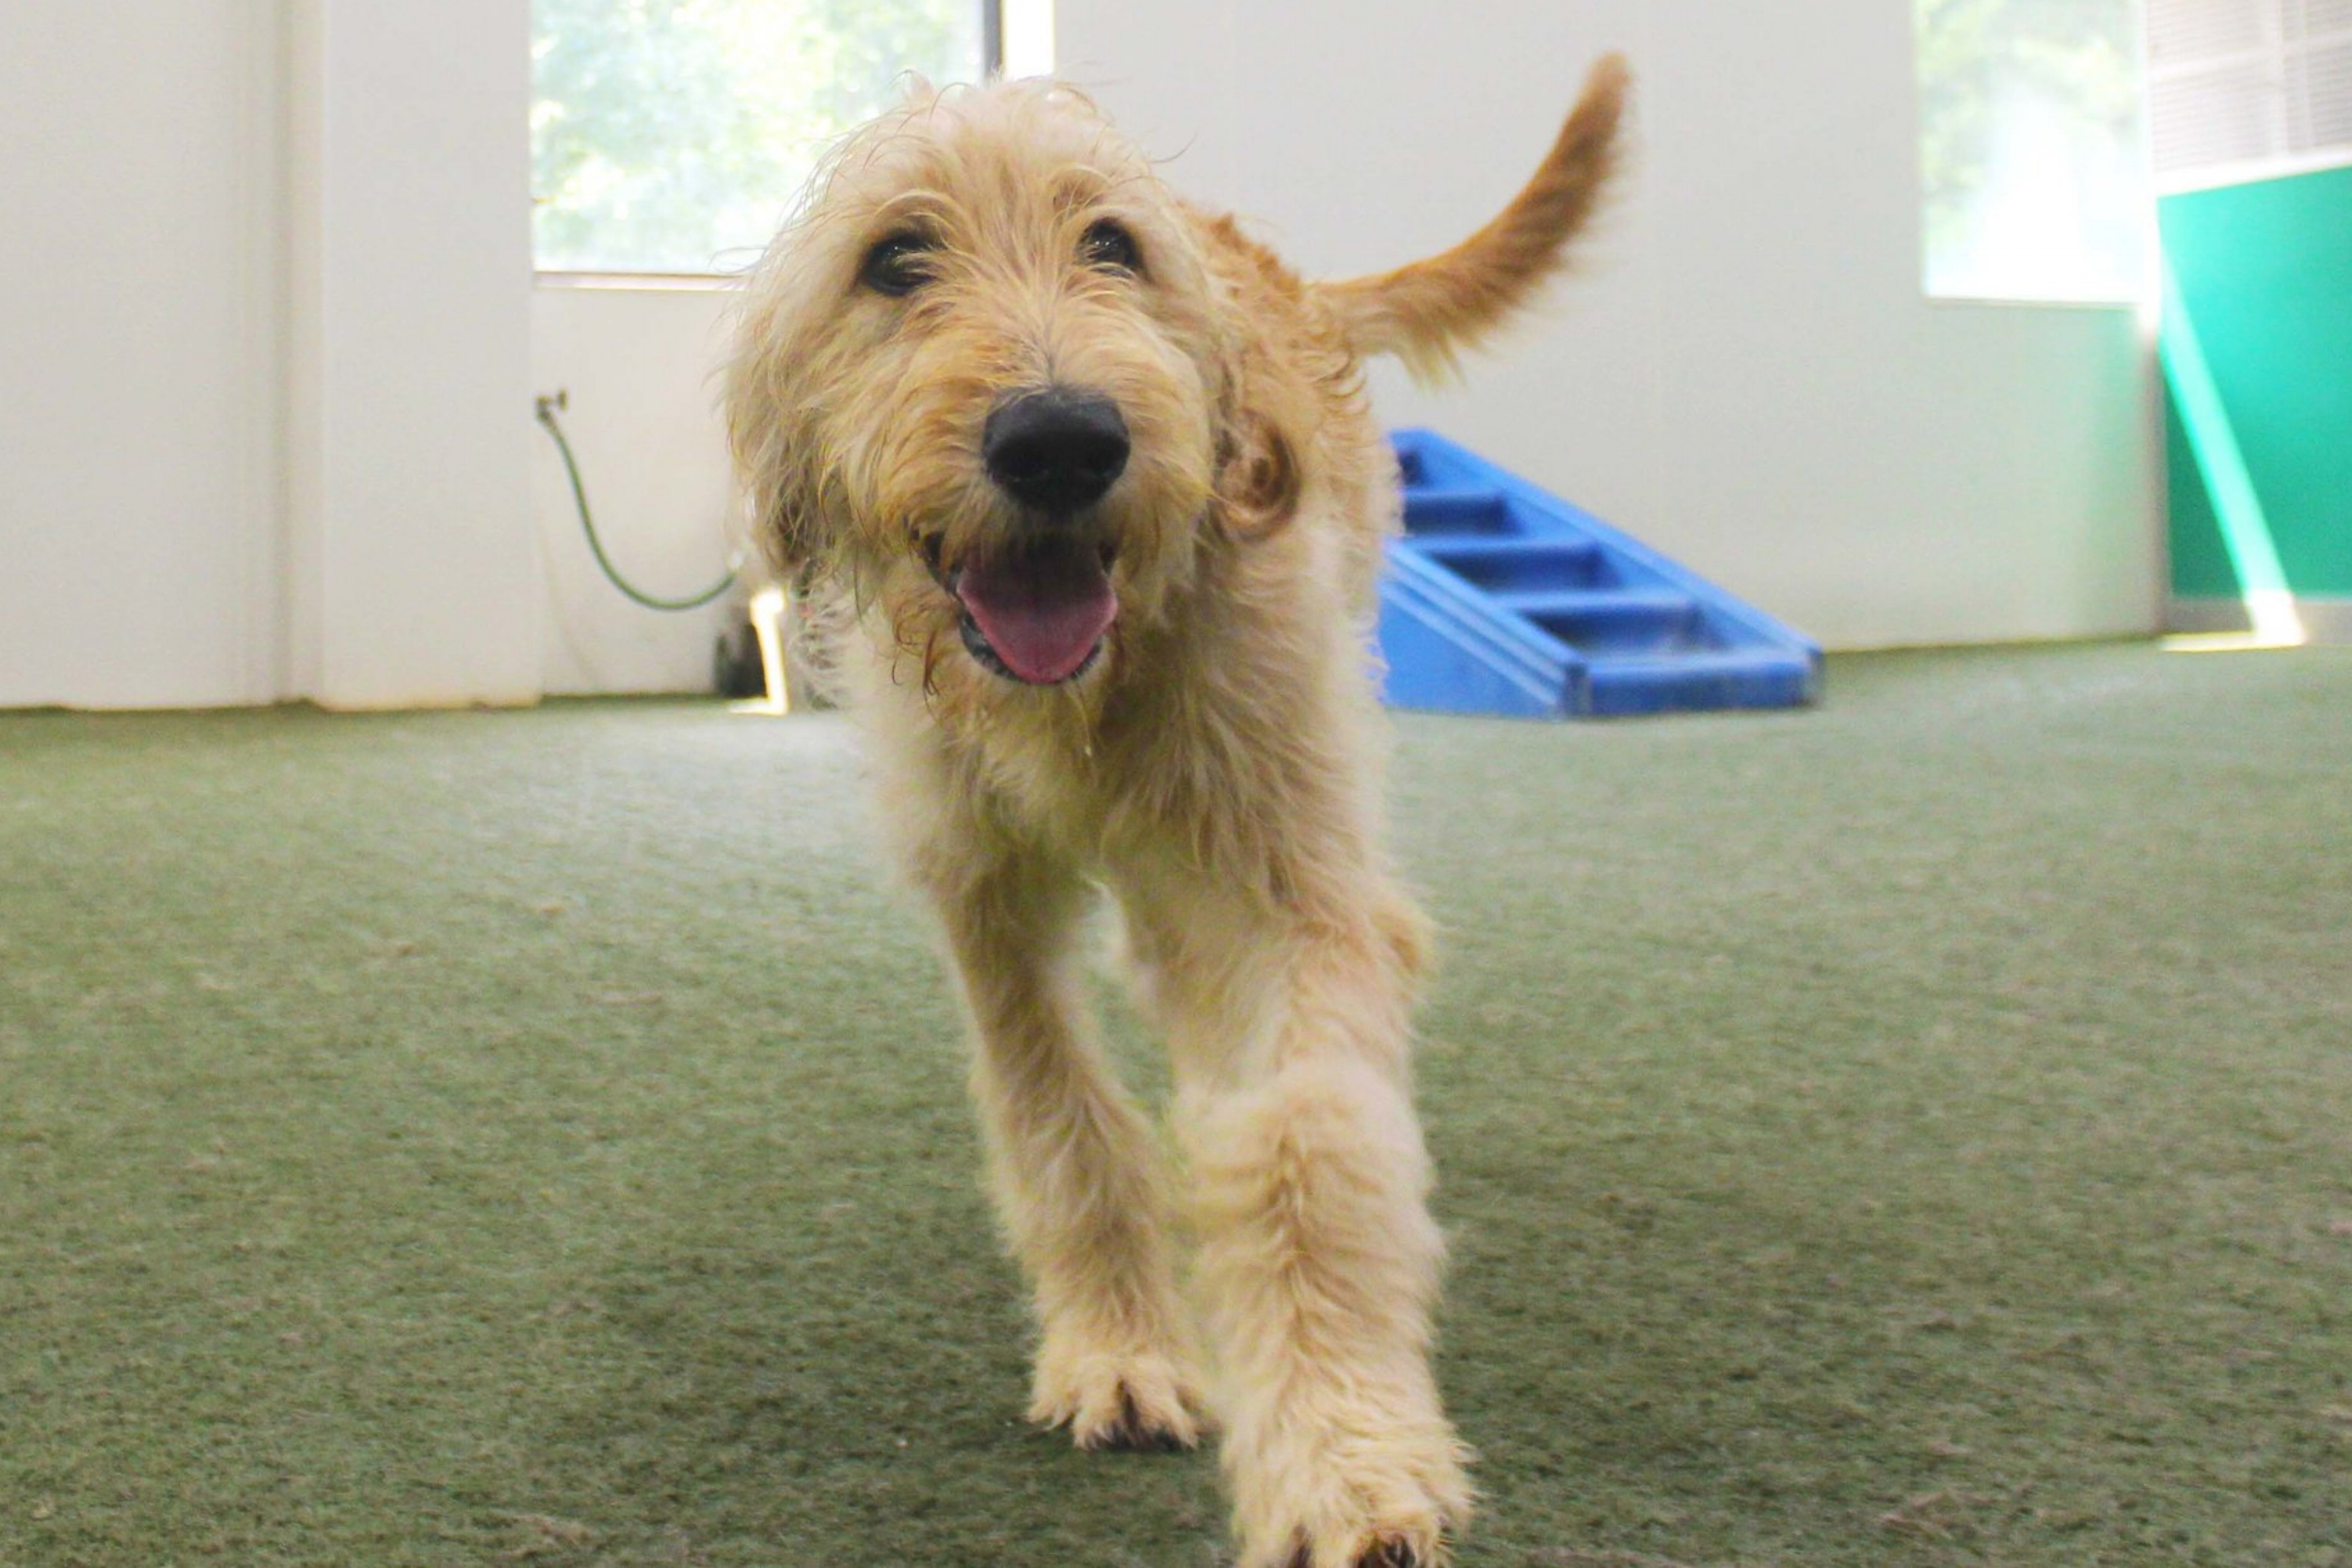 Charlie is a truly wonderful dog. Playful with any other dog, whether it be daycare or boarding, he's just happy to be have friends to play with. We're always happy when he's around.